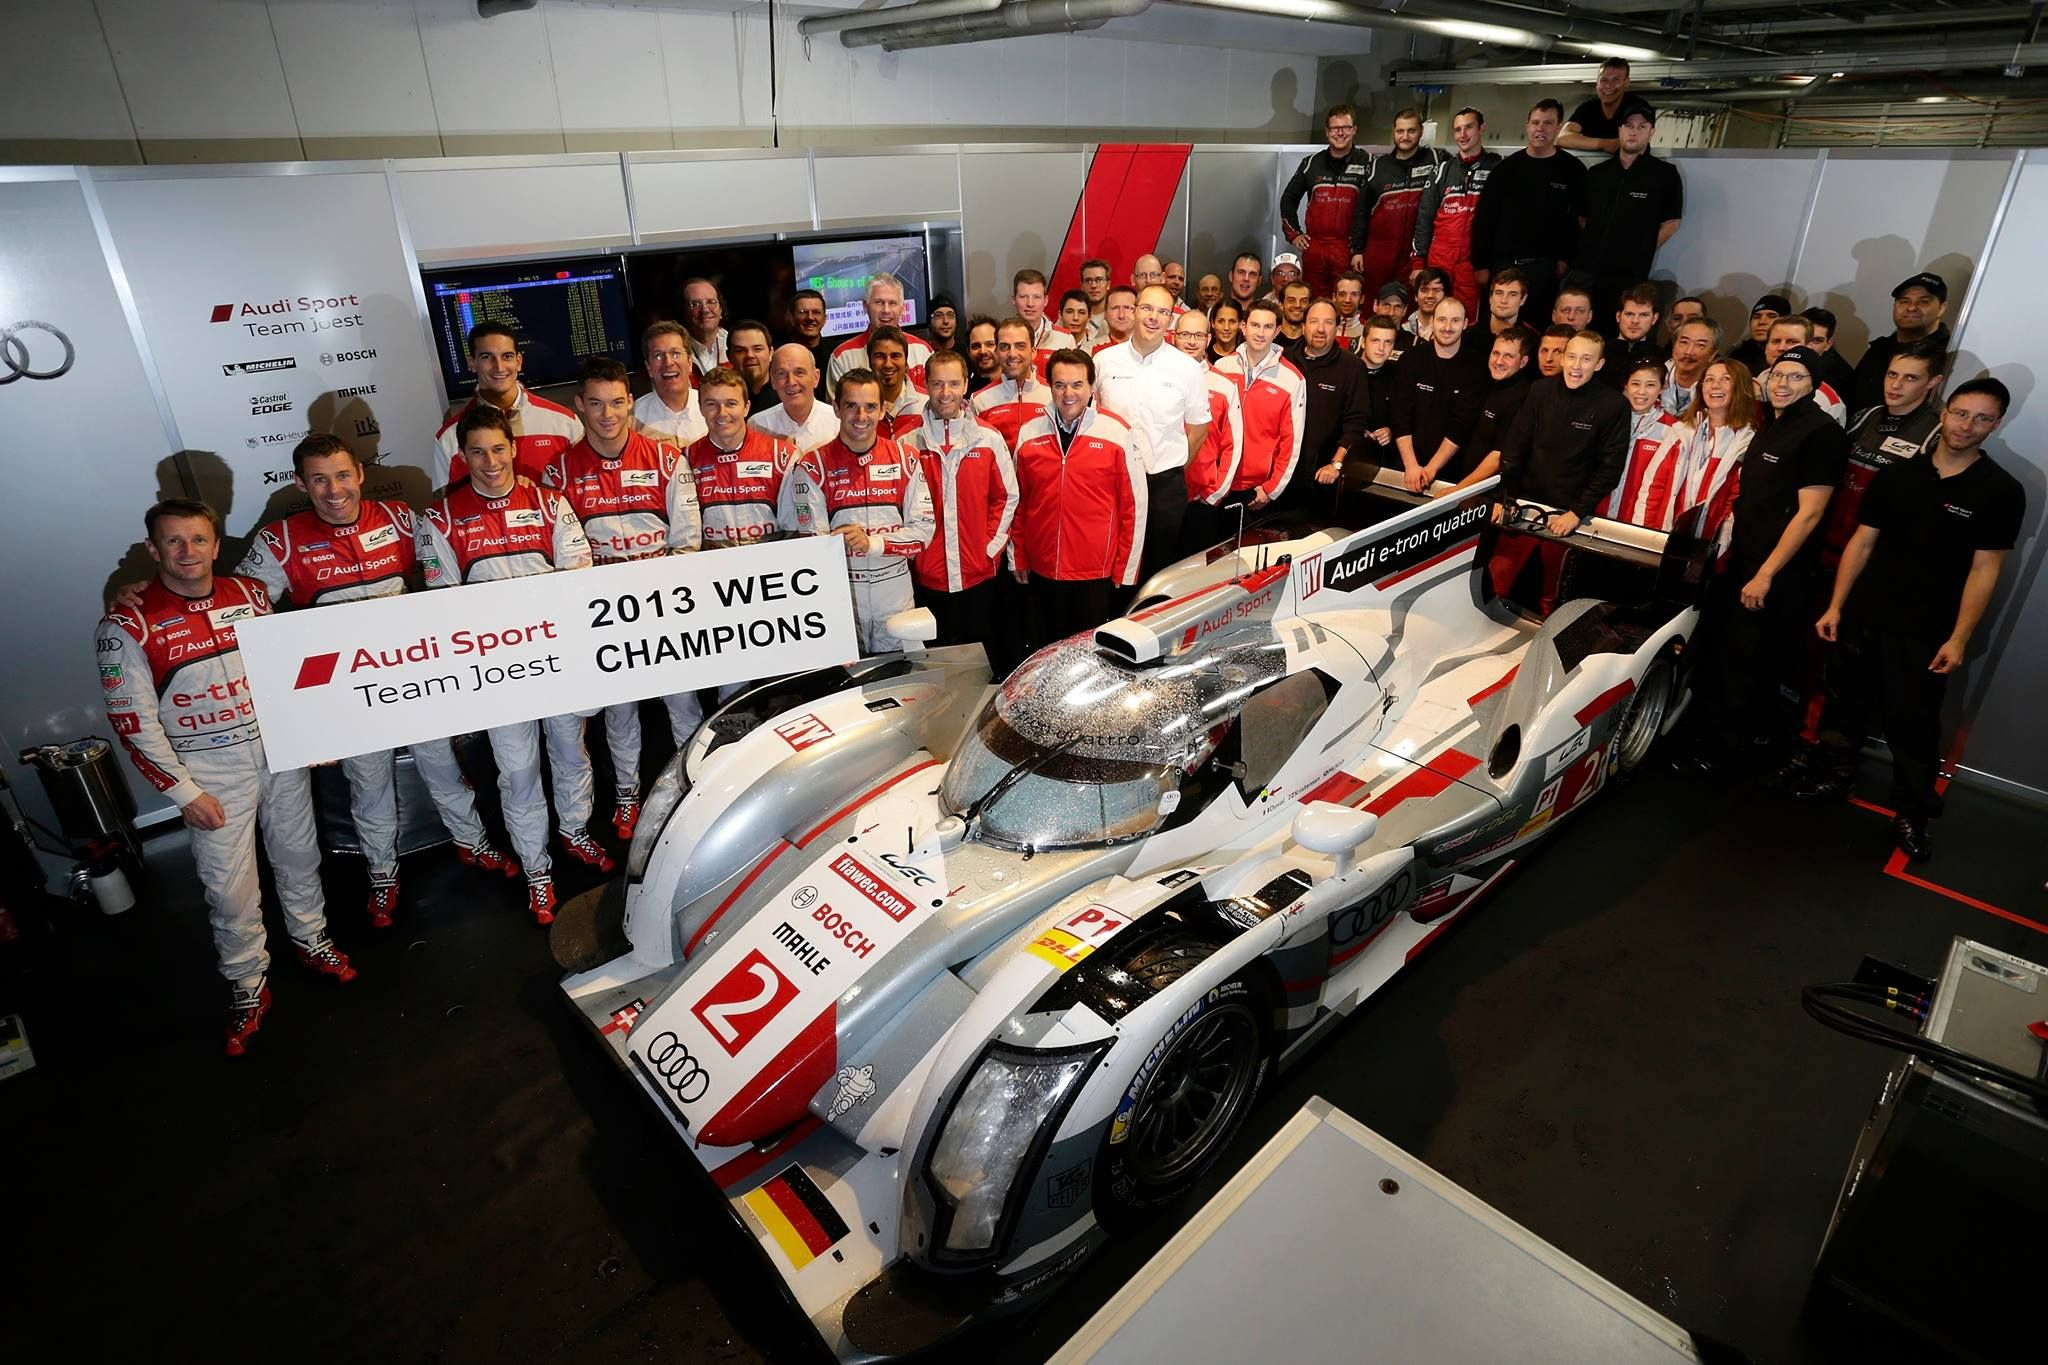 Congratulations to Audi Sport! At the FIA WEC in Fuji we registered a second successive Manufacturers' Championship, whilst in DTM, Audi Sport Team Phoenix secured the 2013 Teams' title.